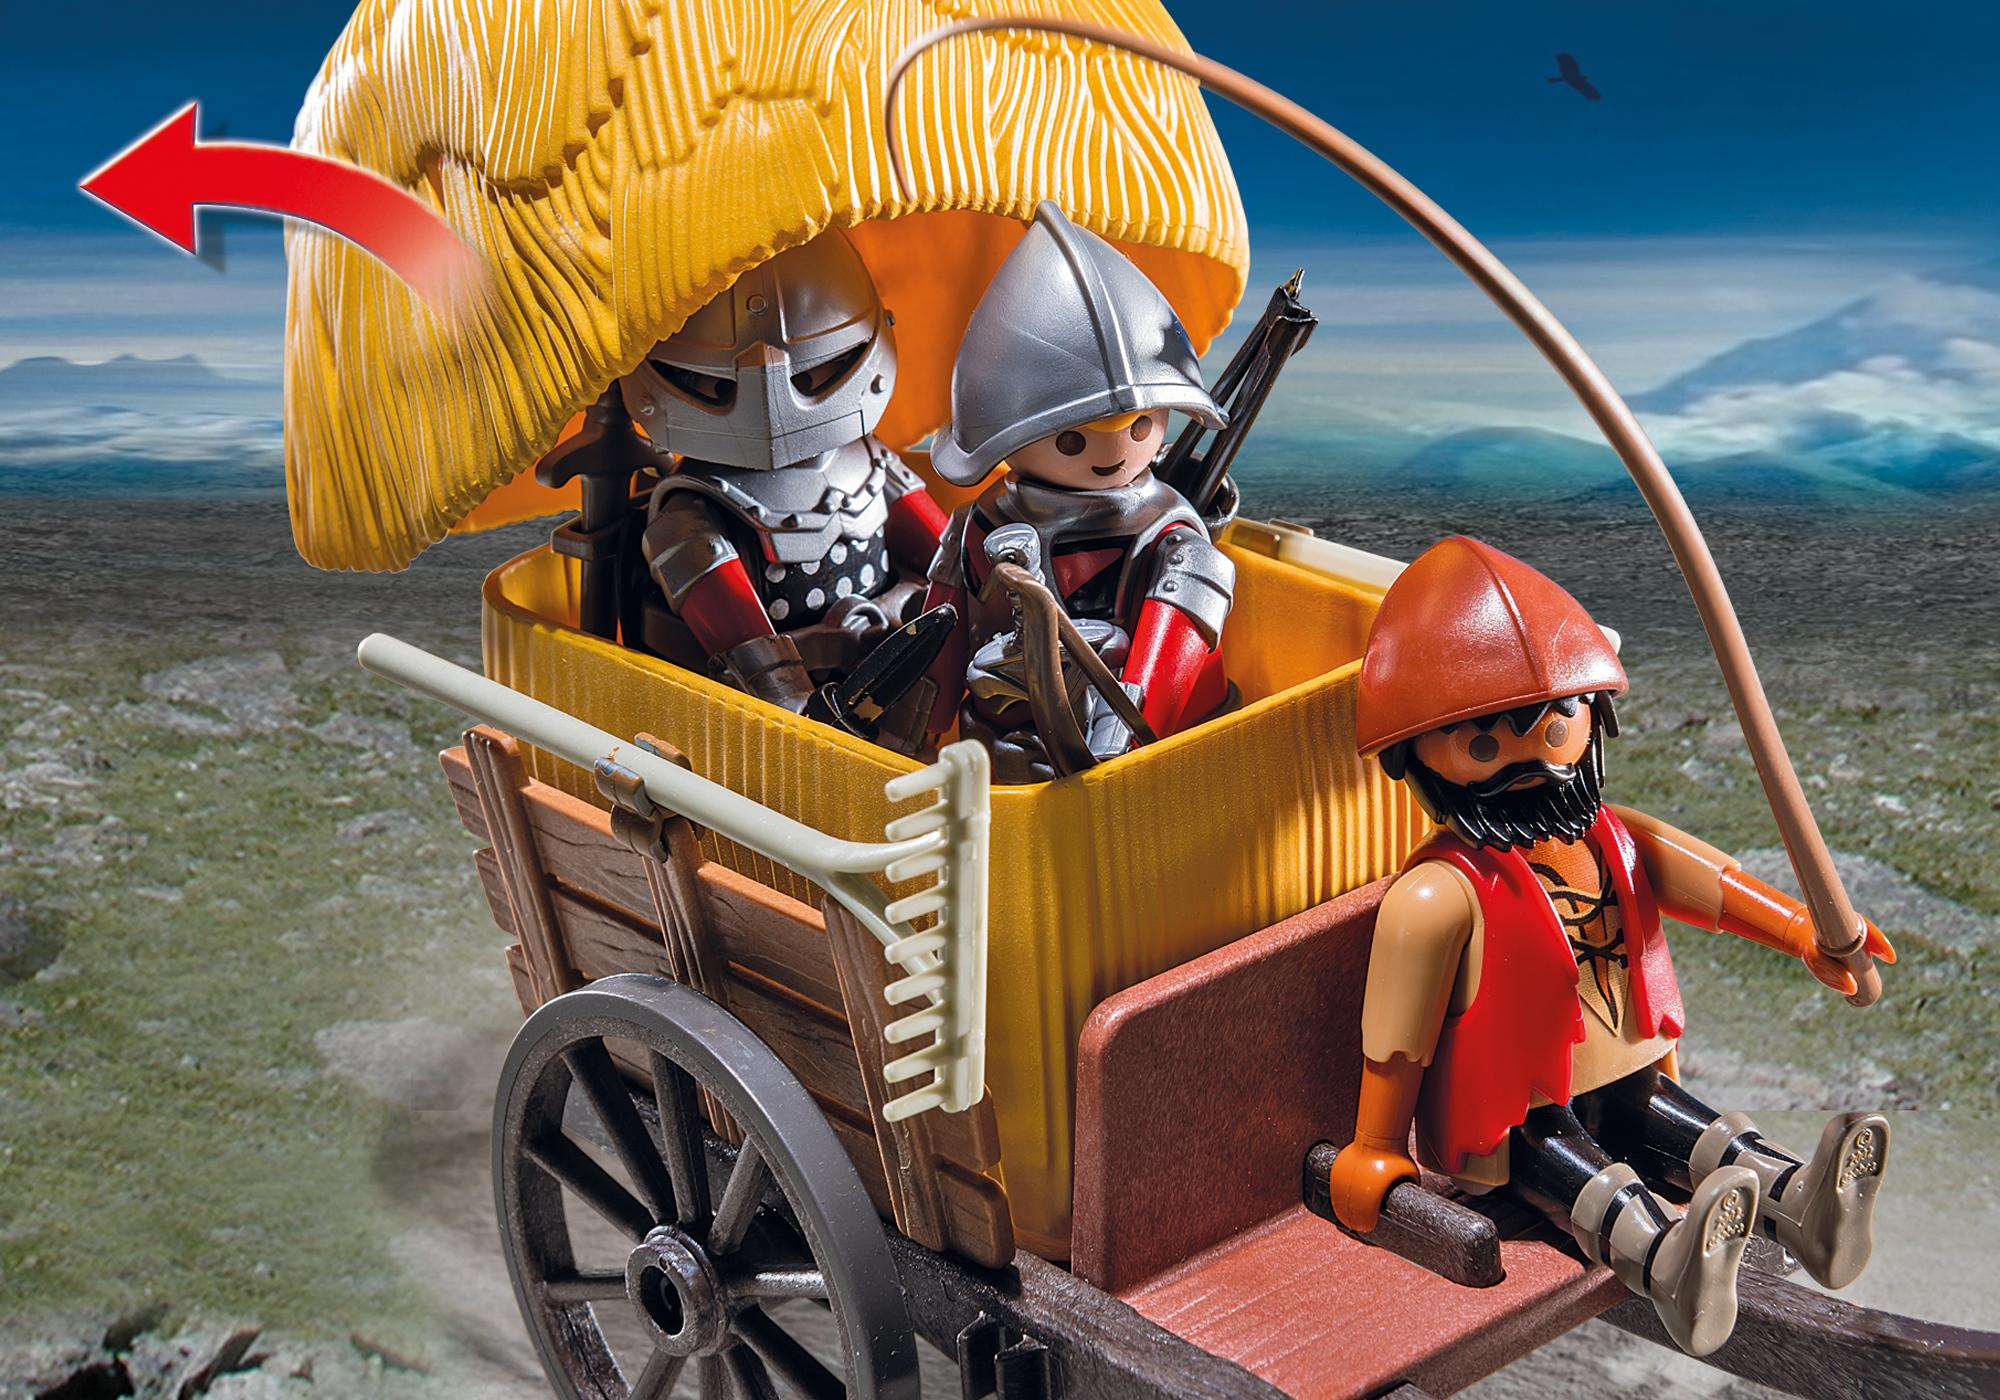 http://media.playmobil.com/i/playmobil/6005_product_extra3